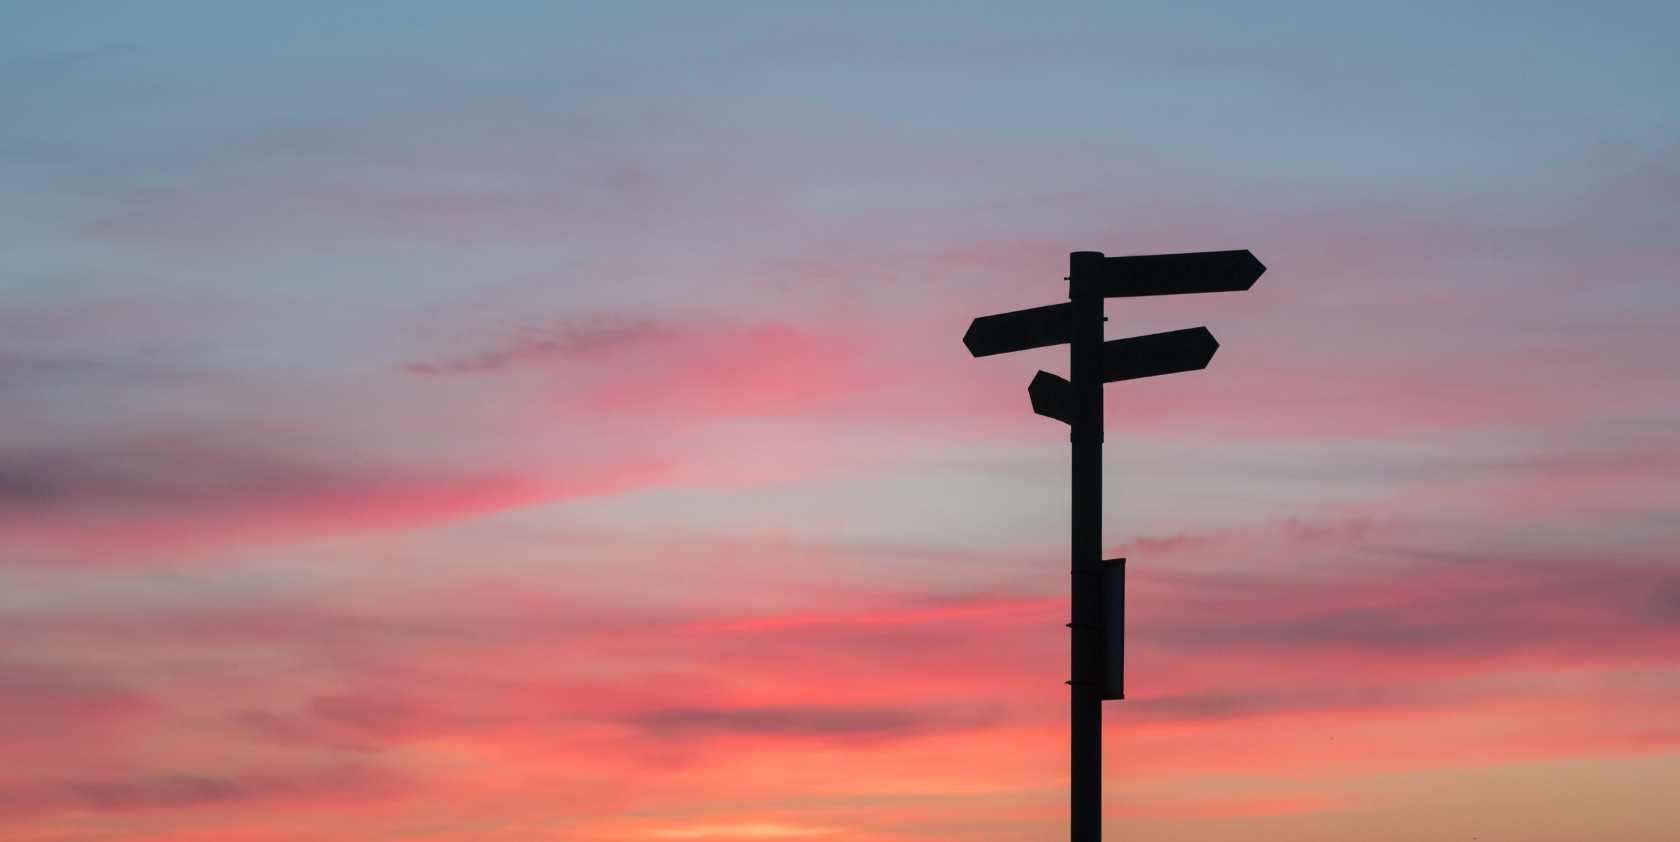 Signpost with diverging directions with a sunset background